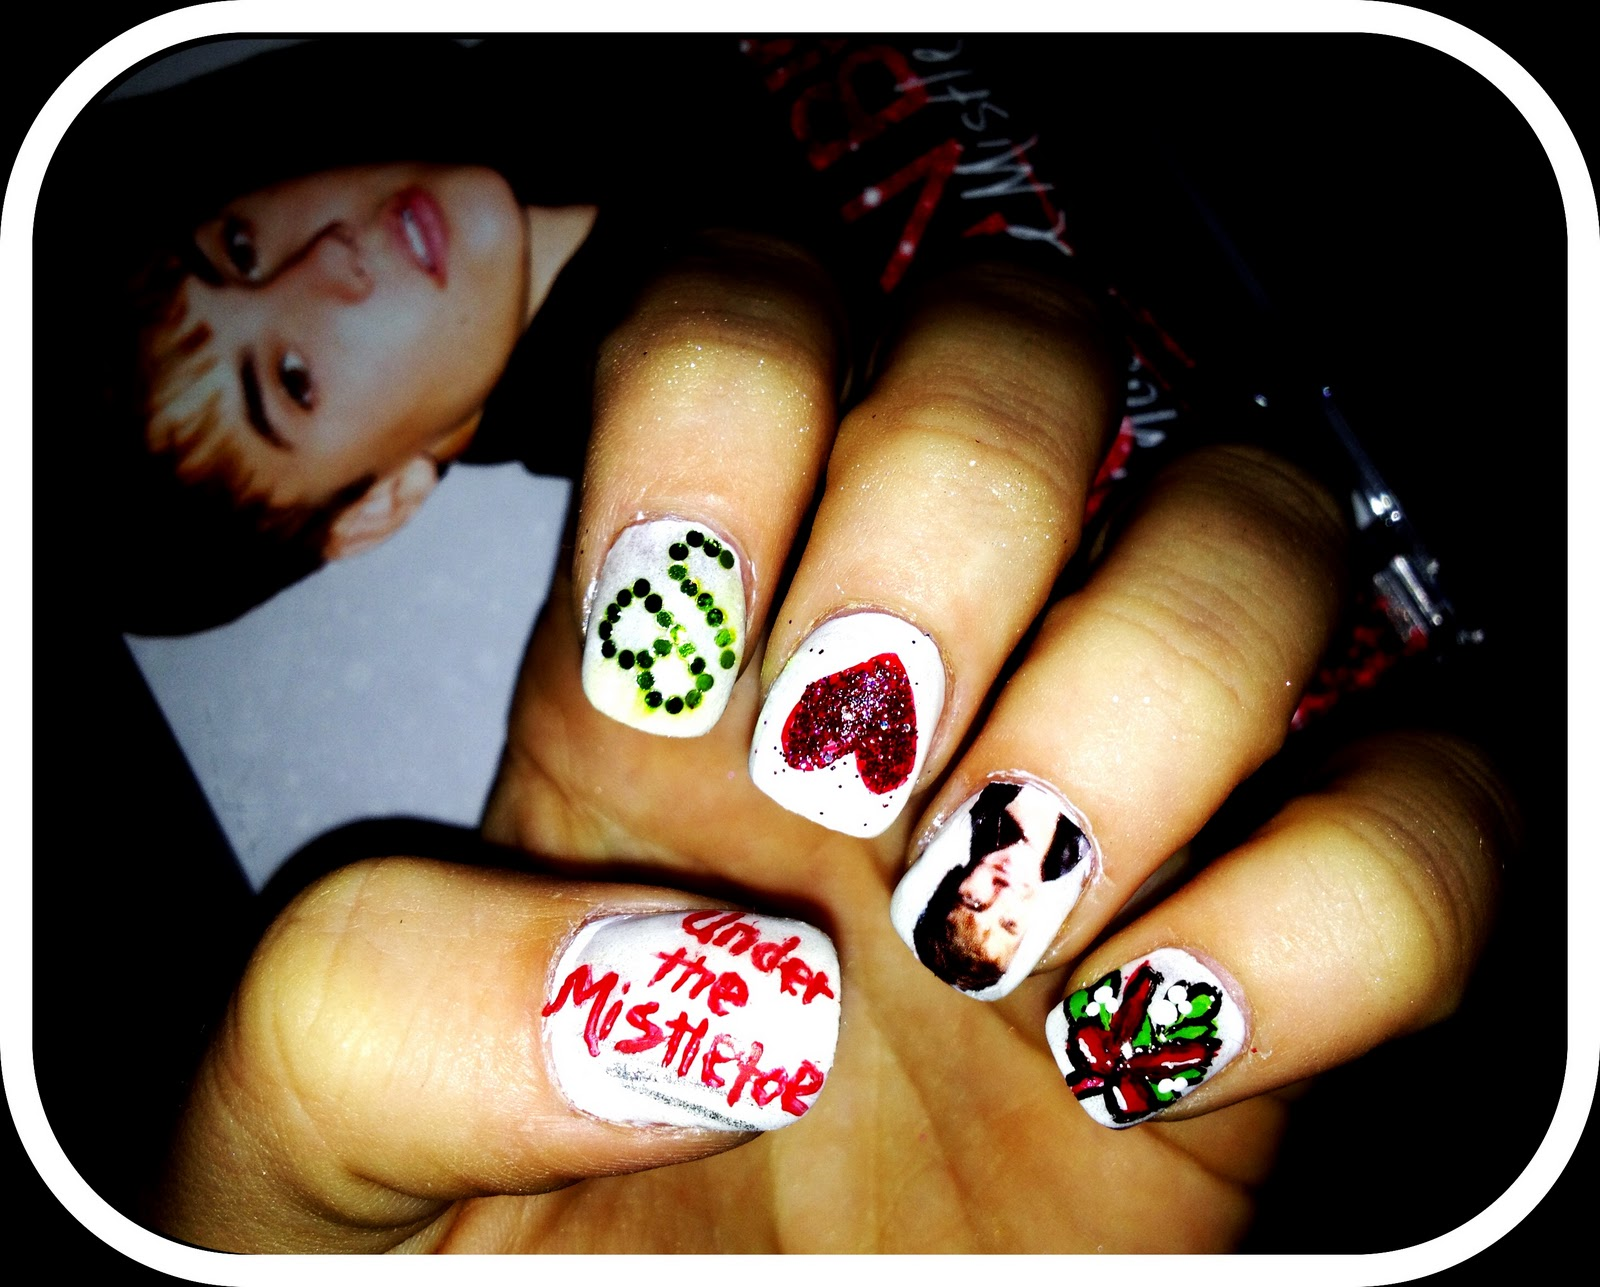 Nailed Daily: Day 10 - Under the Mistletoe Justin Bieber Nails